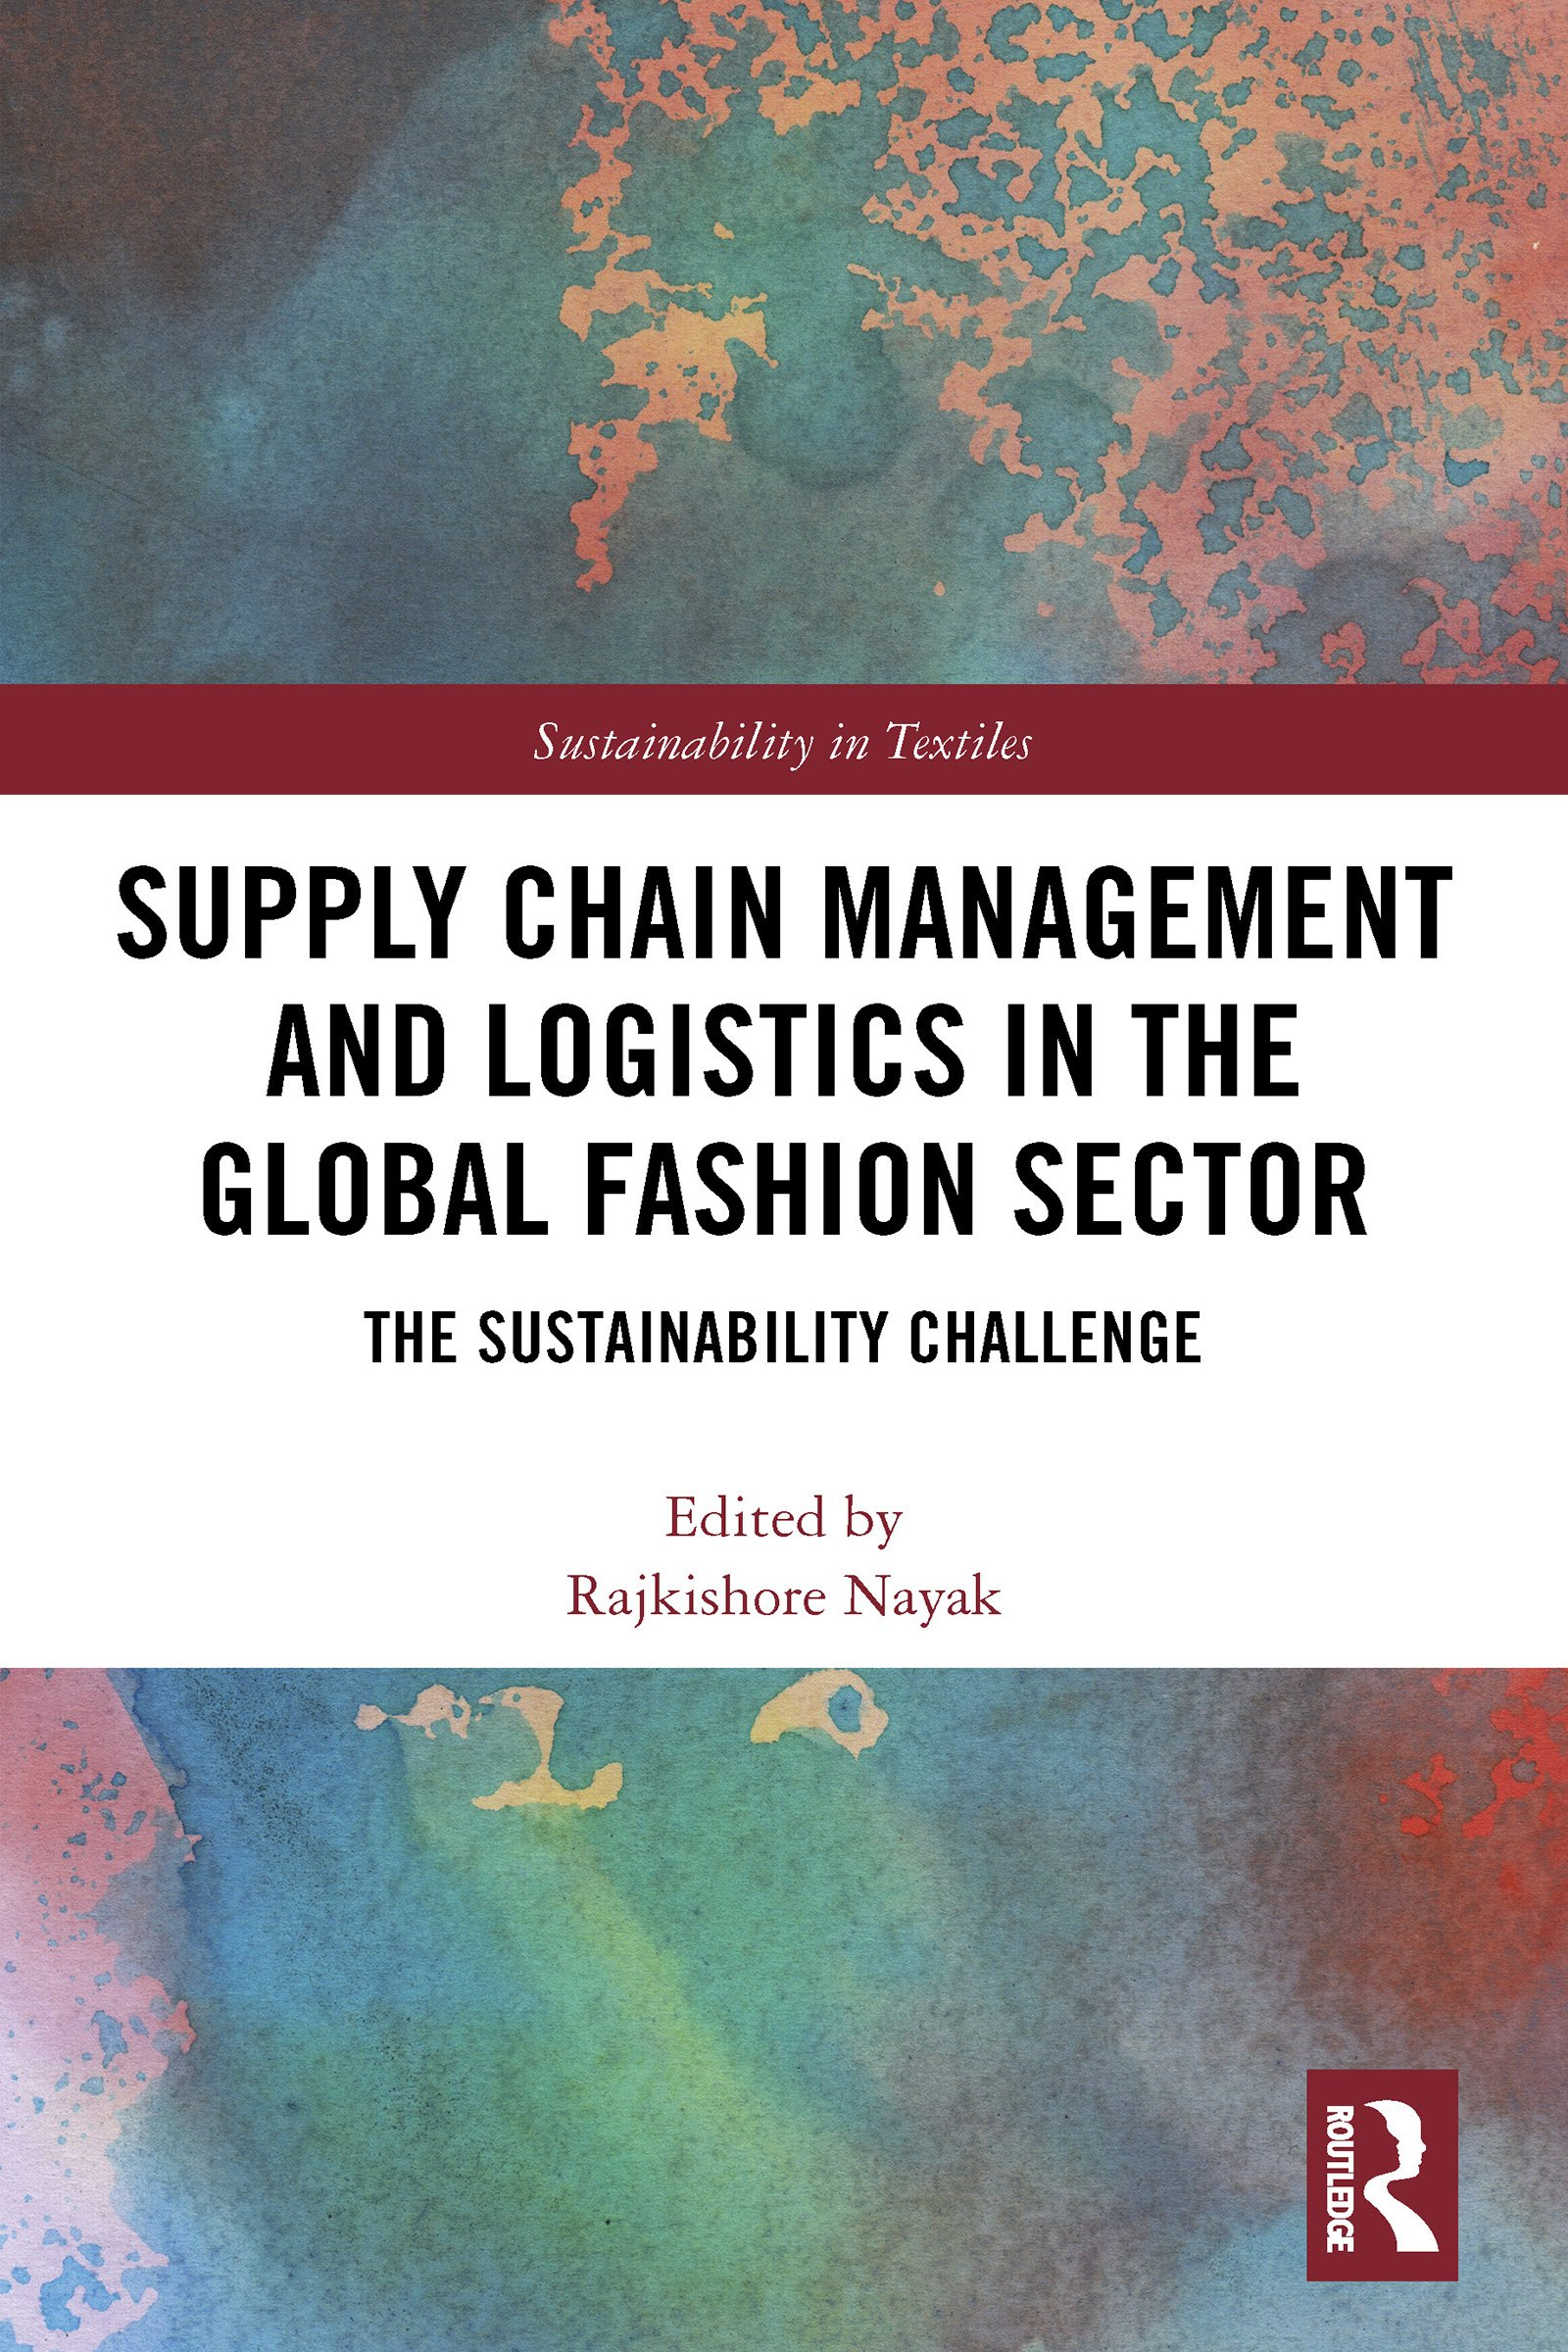 Supply Chain Management and Logistics in the Global Fashion Sector